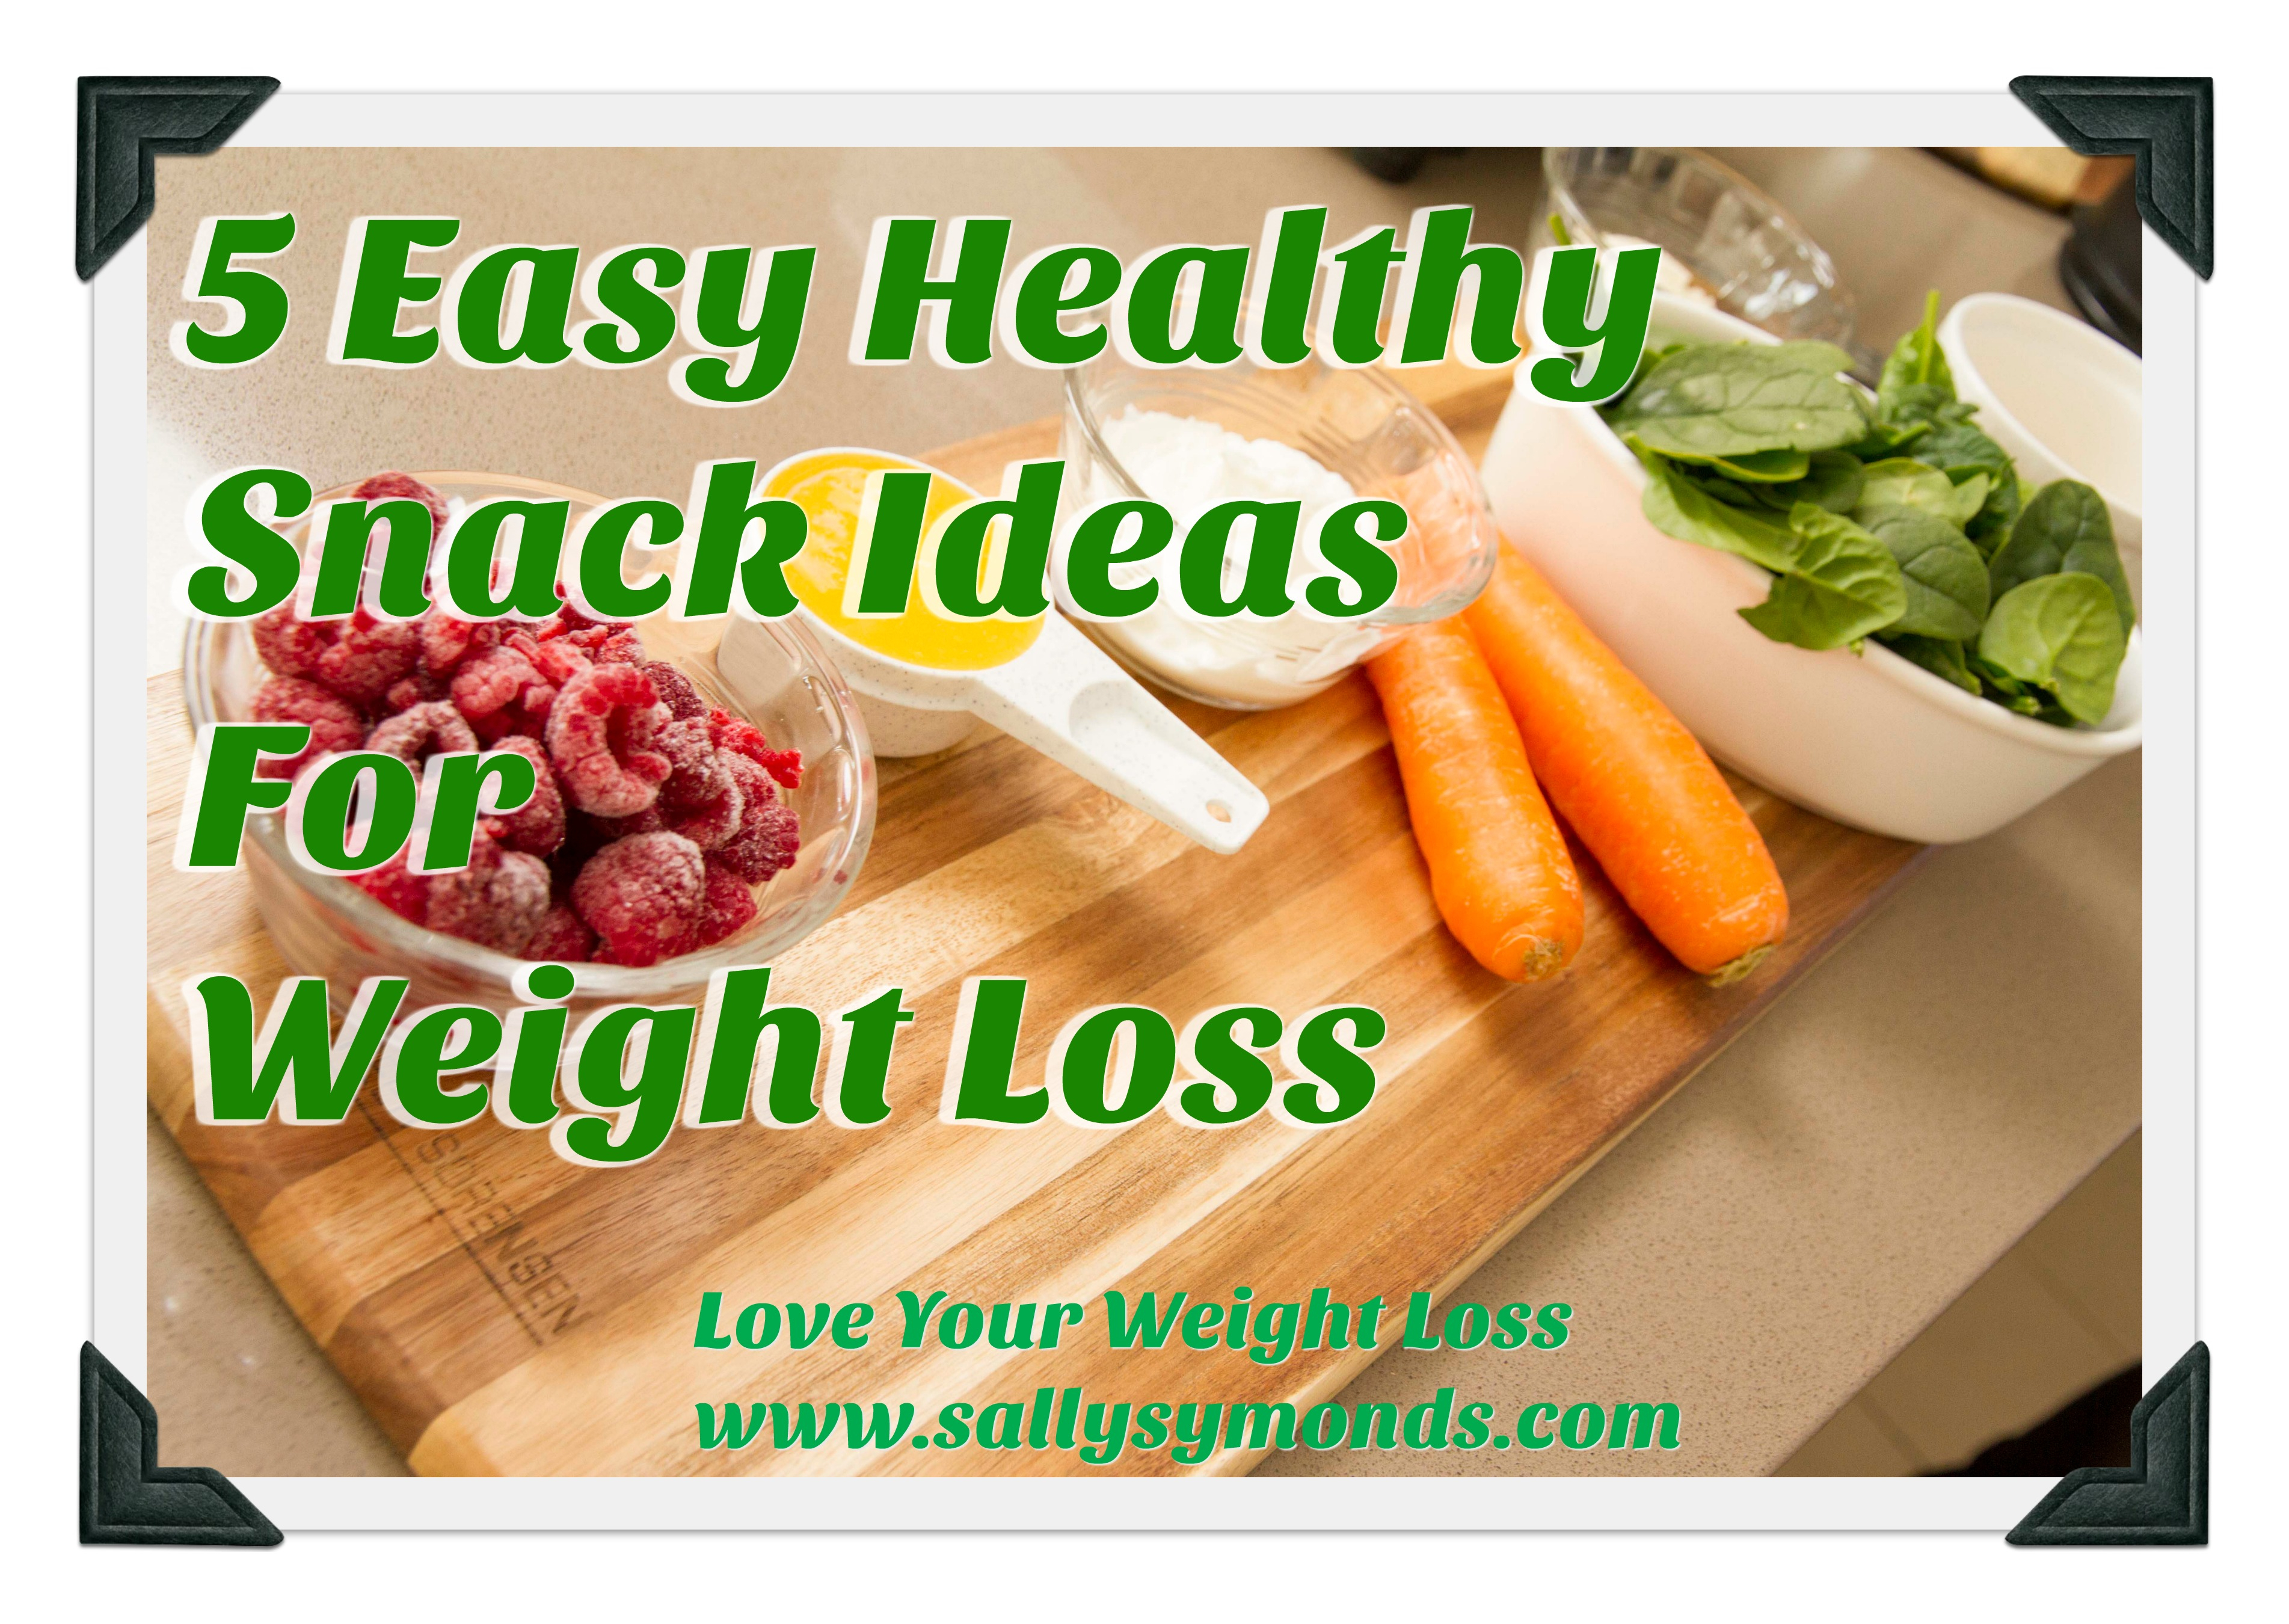 10 Wonderful Snack Ideas For Weight Loss 5 easy healthy snack ideas for weight loss sally symonds 2021